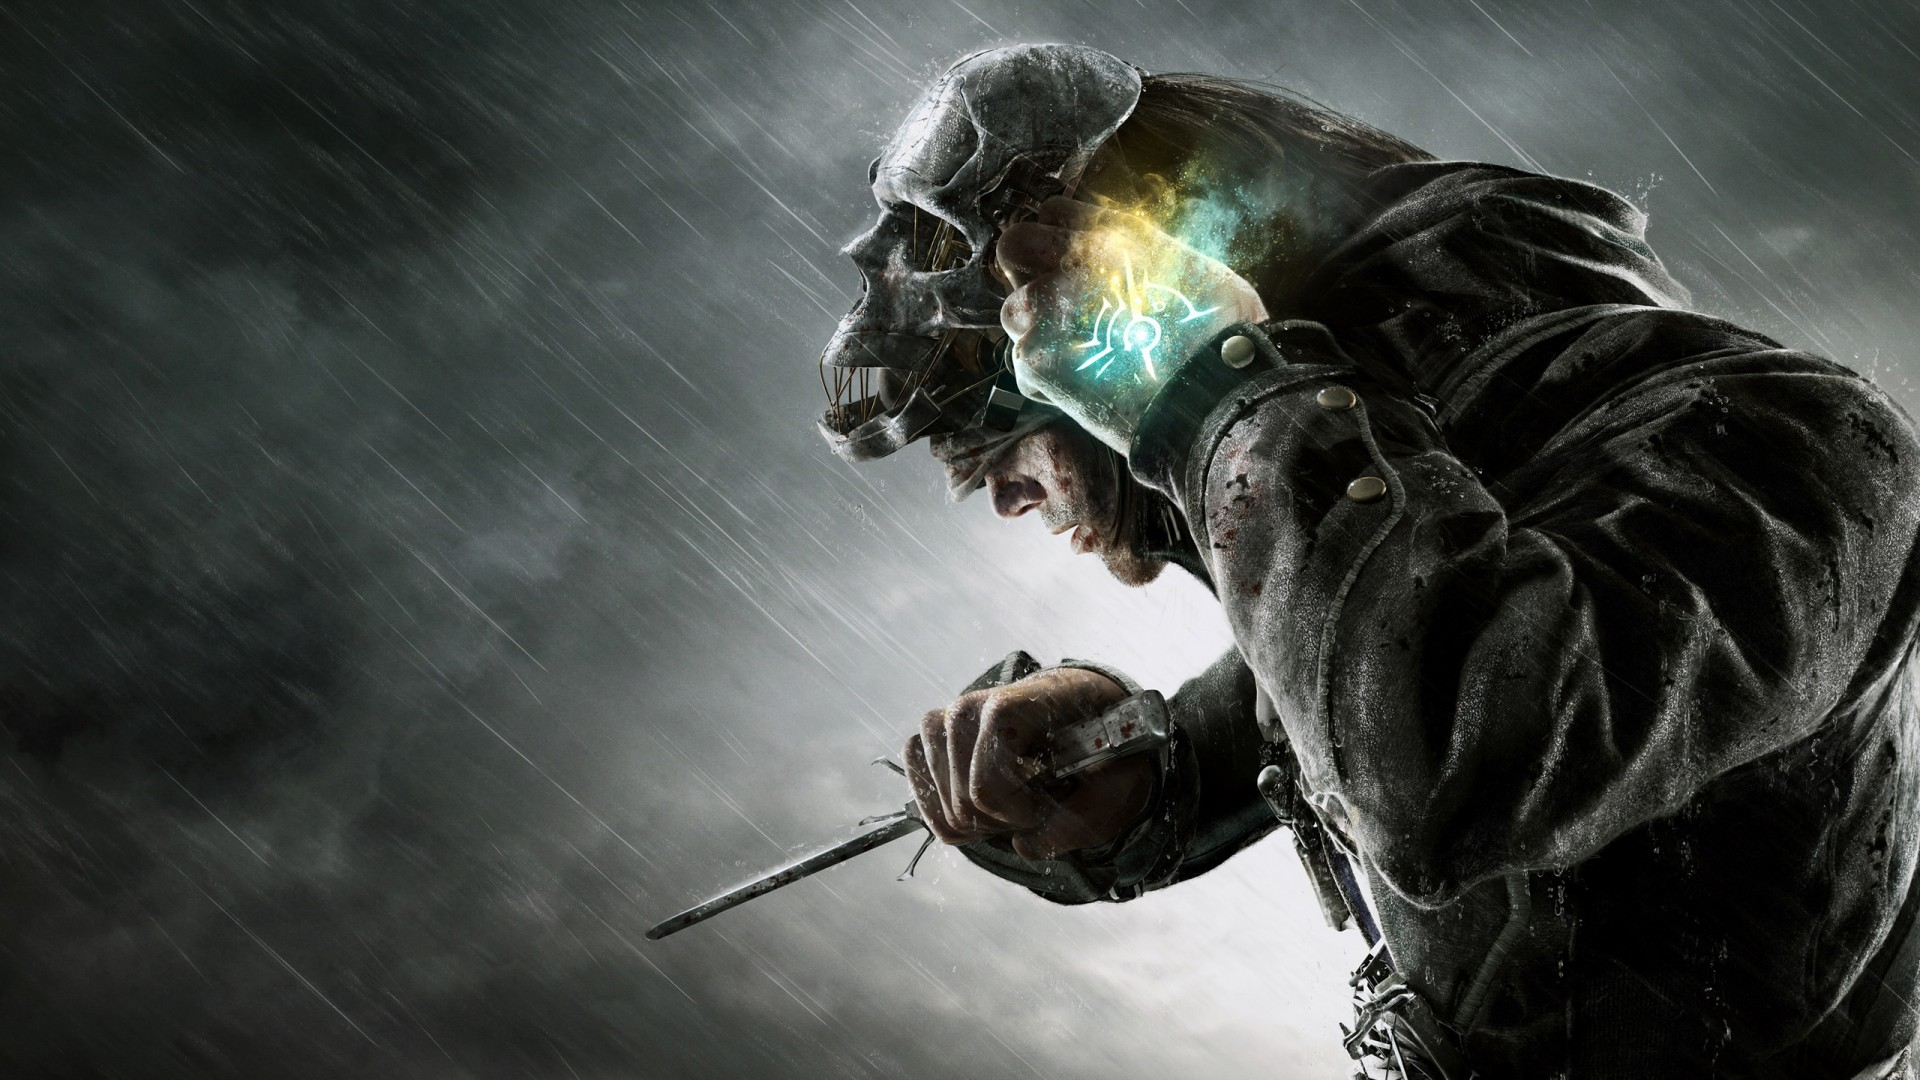 Hunter X Hunter Wallpaper Iphone Dishonored Game Wallpapers Hd Wallpapers Id 11527